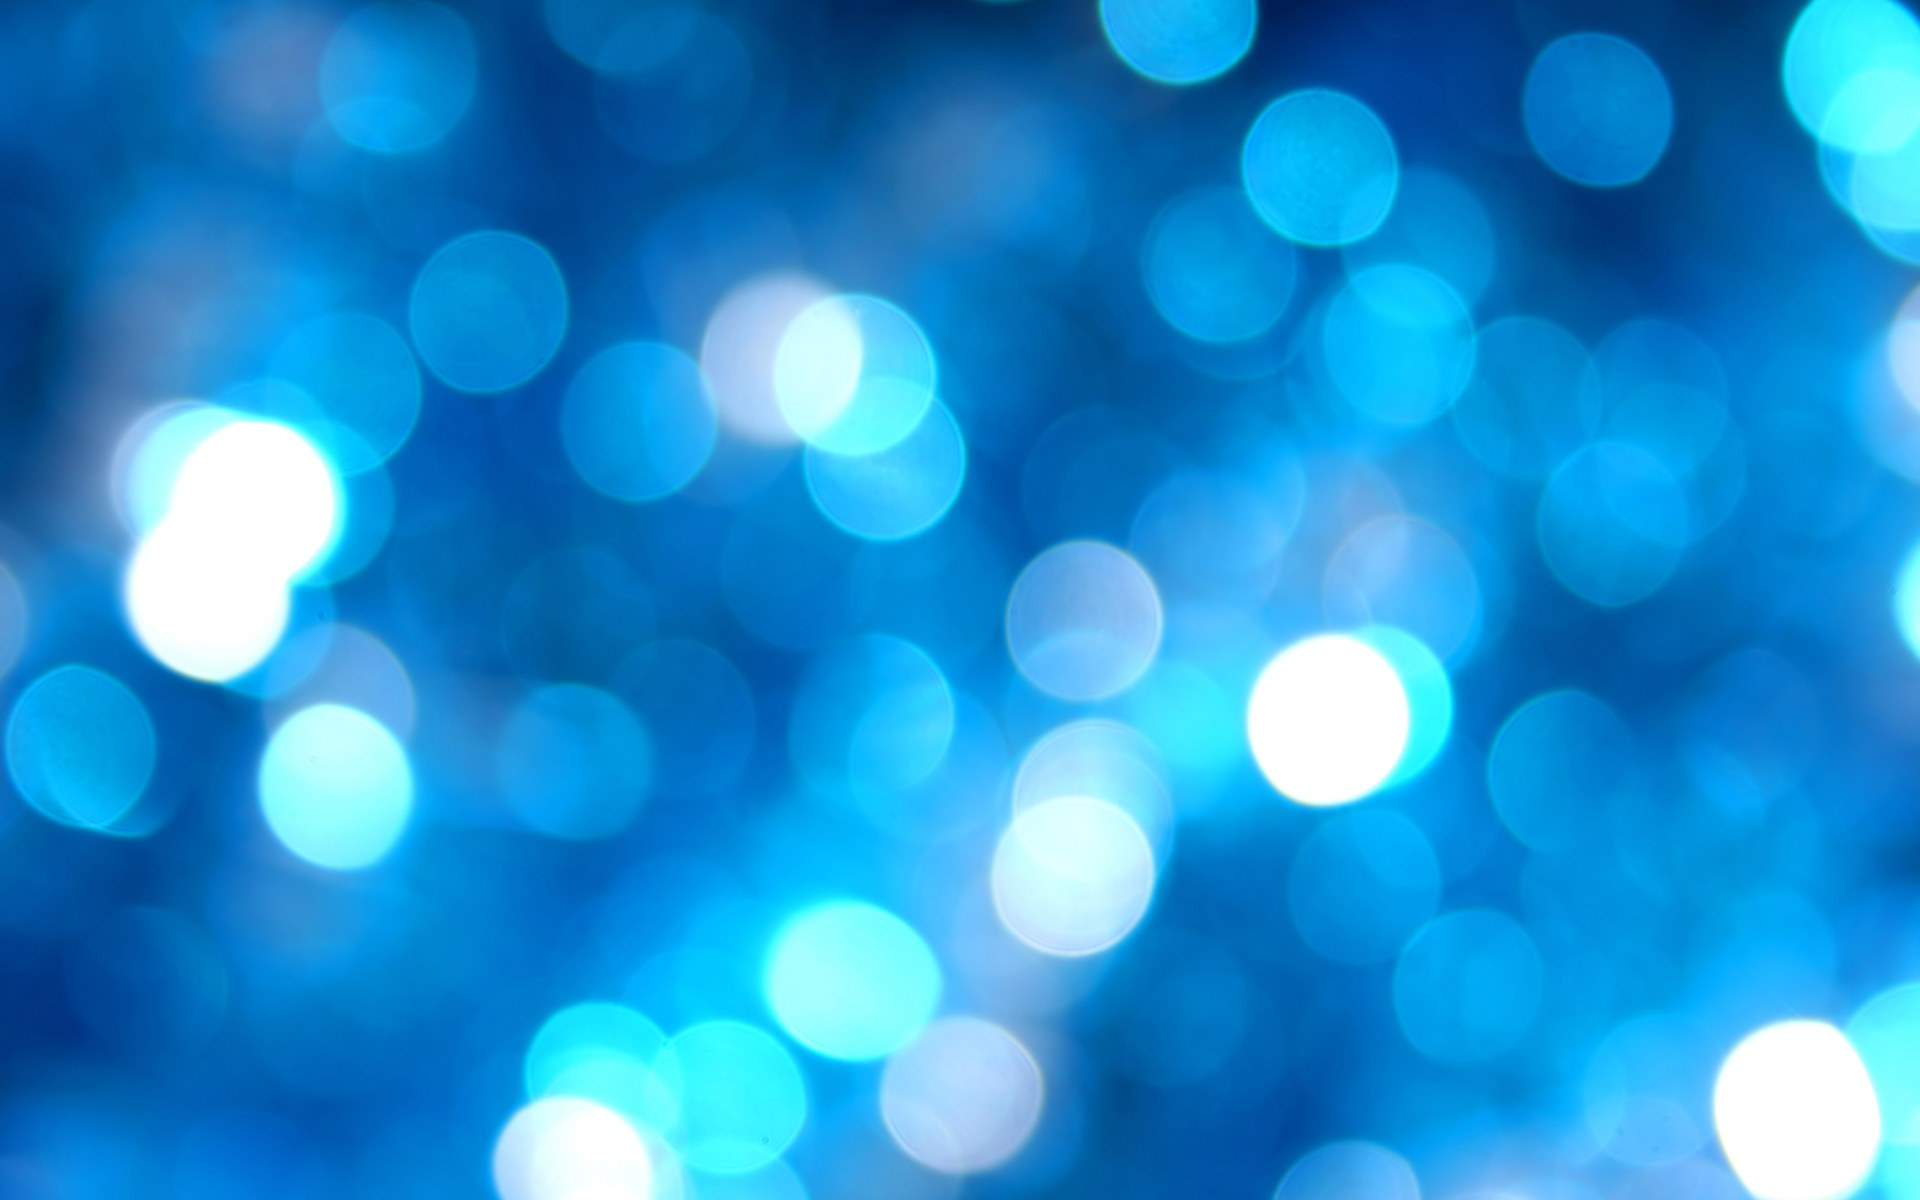 Free Download Blue Backgrounds Wallpaper 604477 1920x1200 For